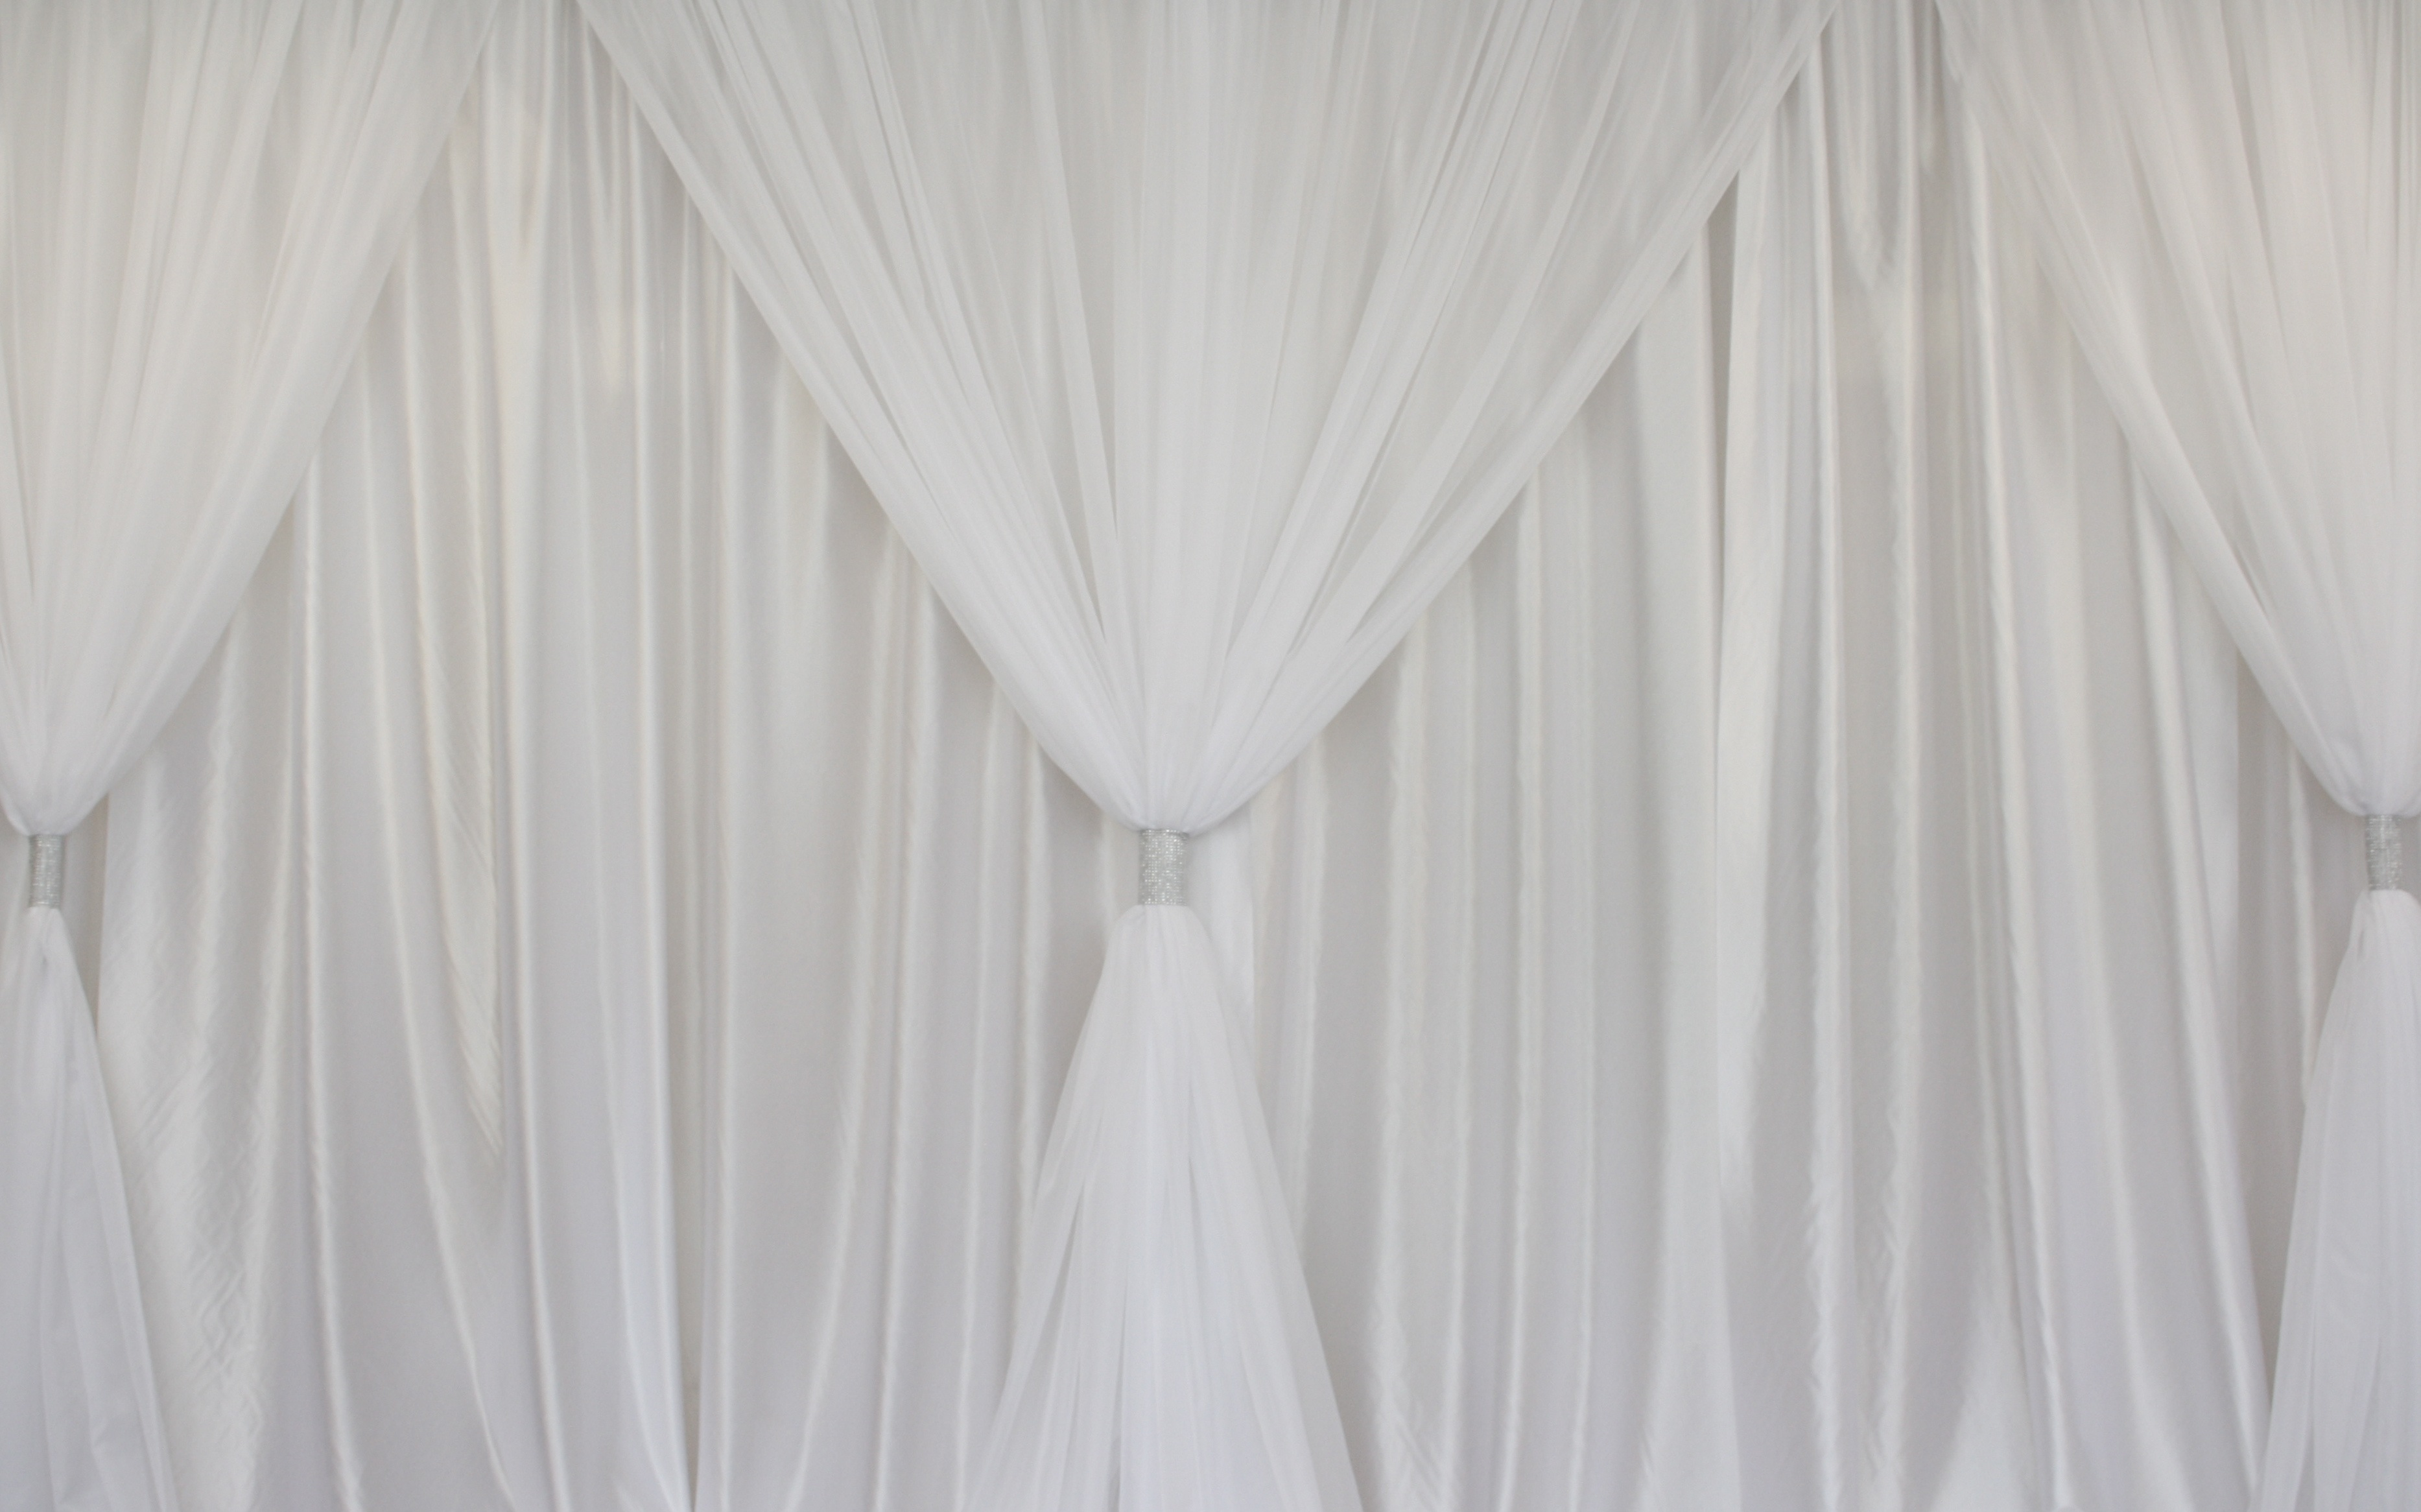 Sheer Zebra Print Curtains Picture On Curtain Wedding Backdrop